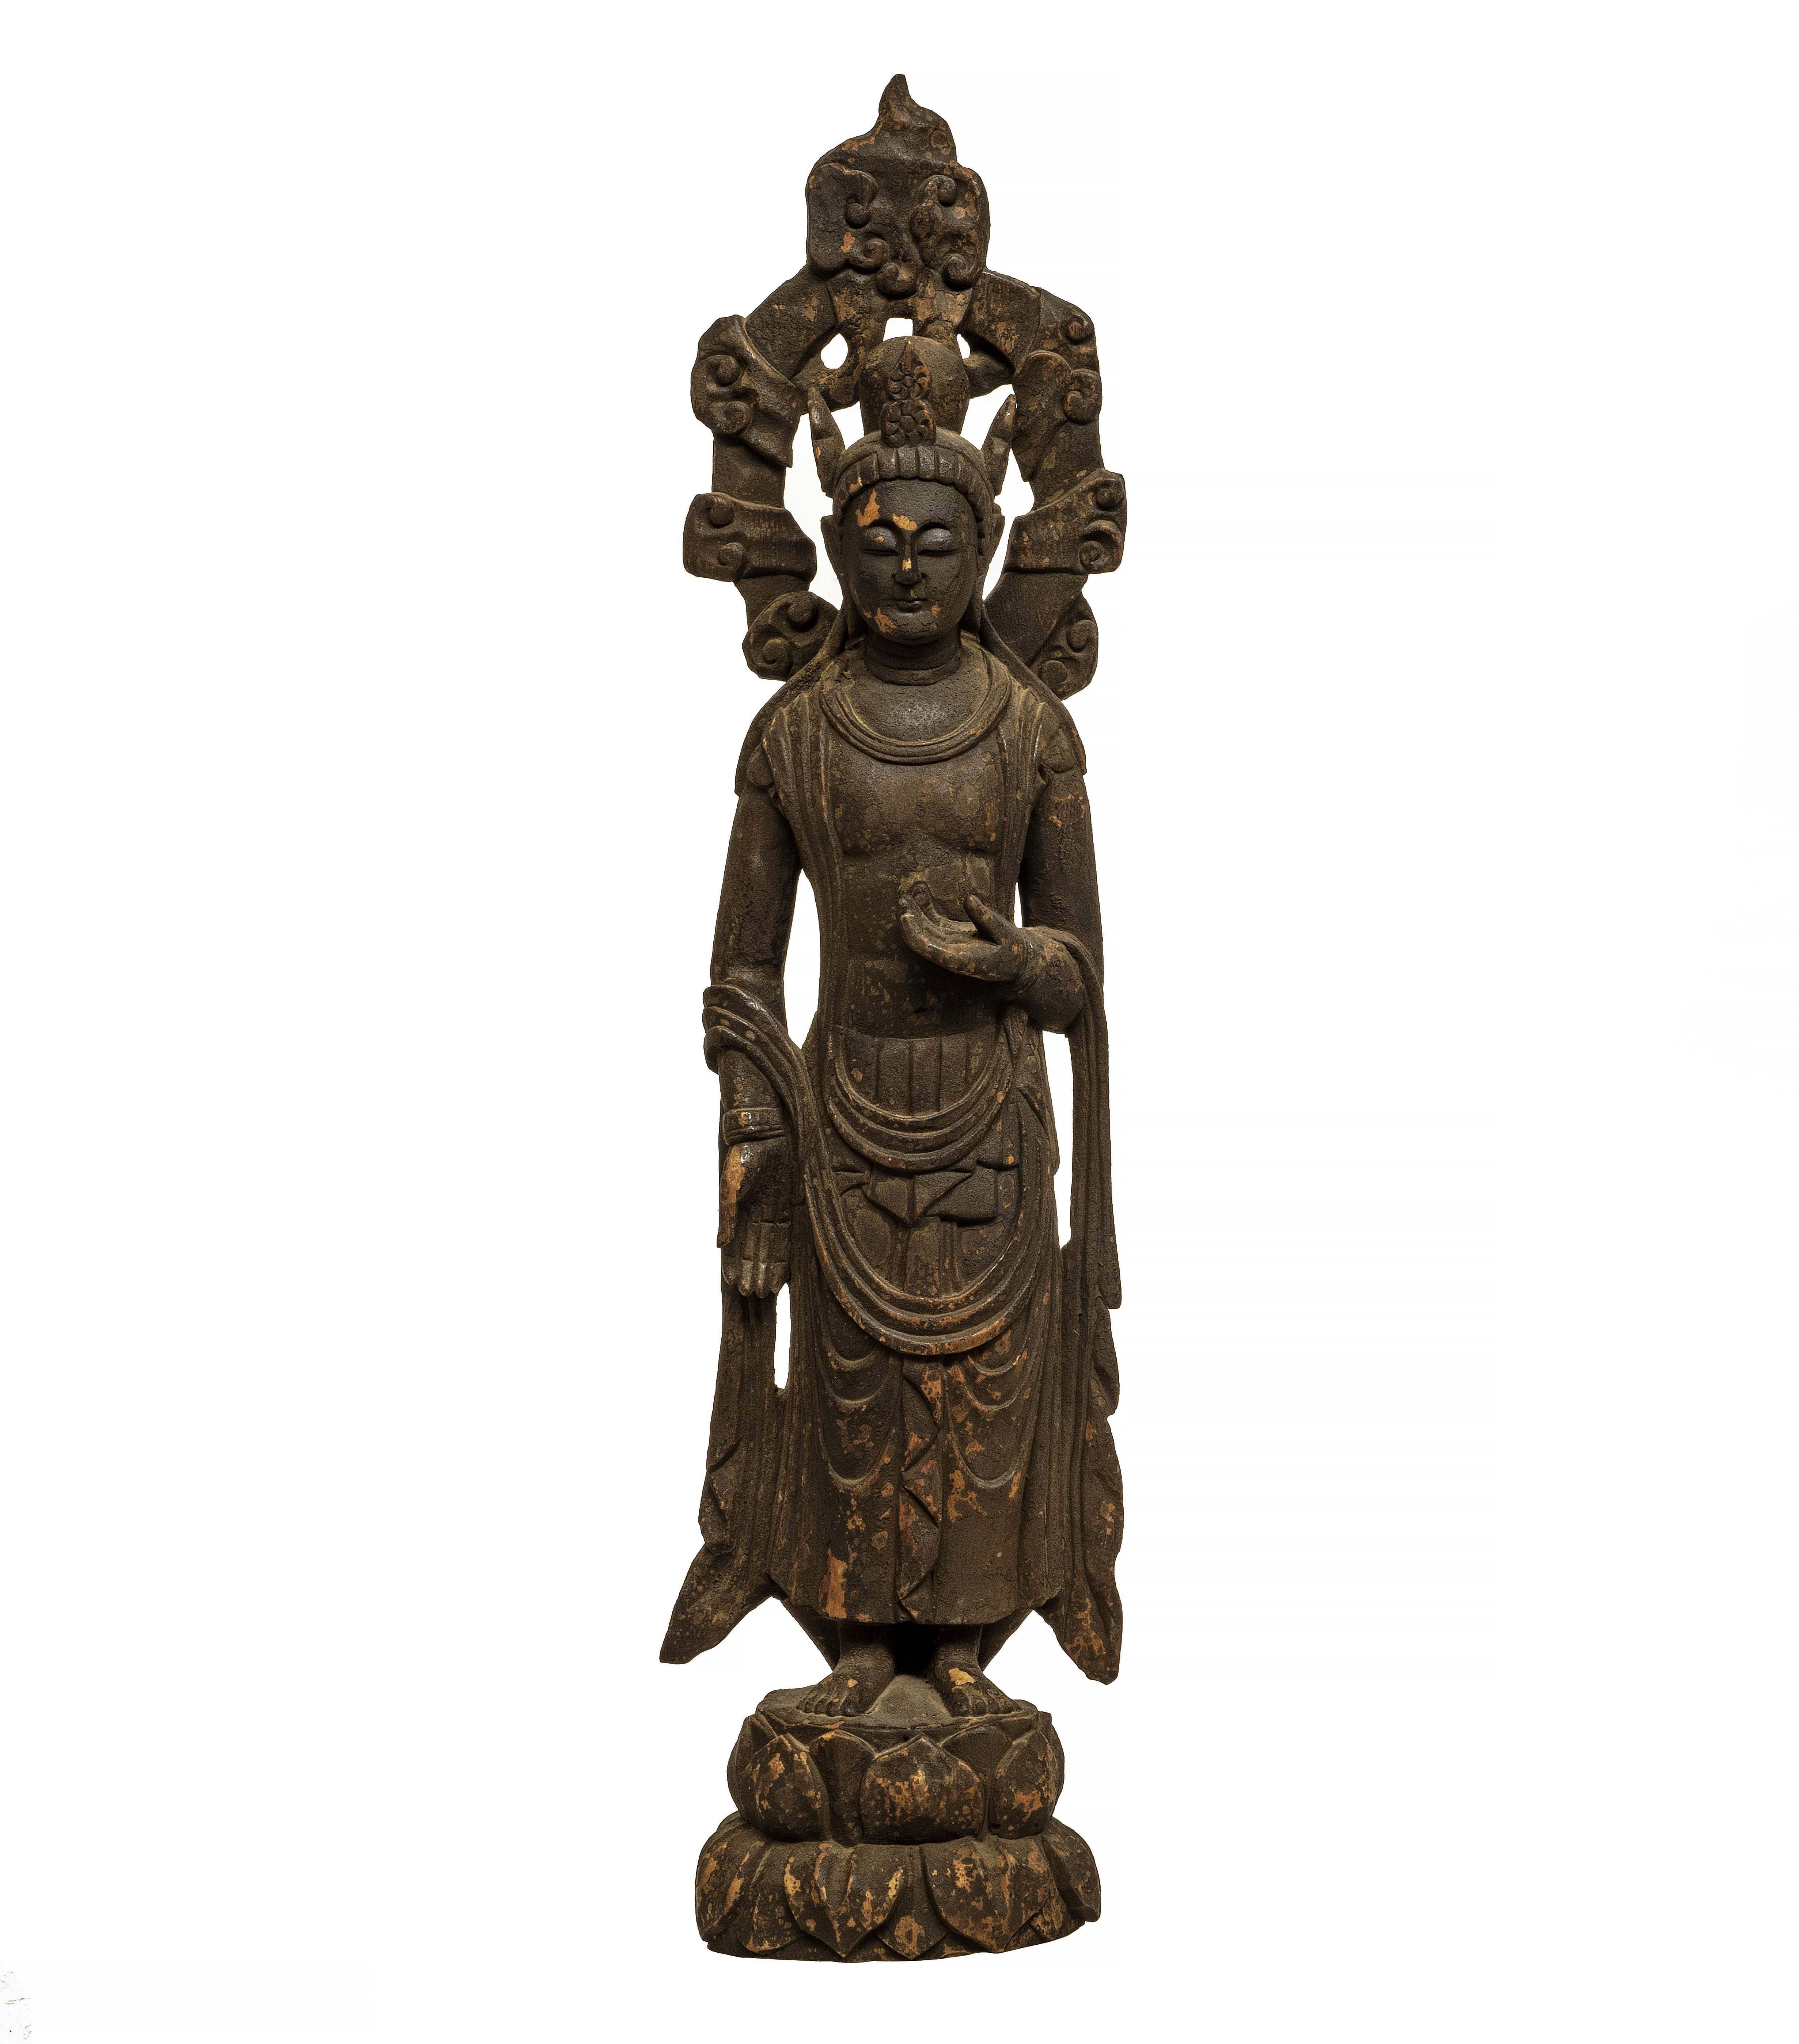 A Large Chinese Wood Carving of Guanyin